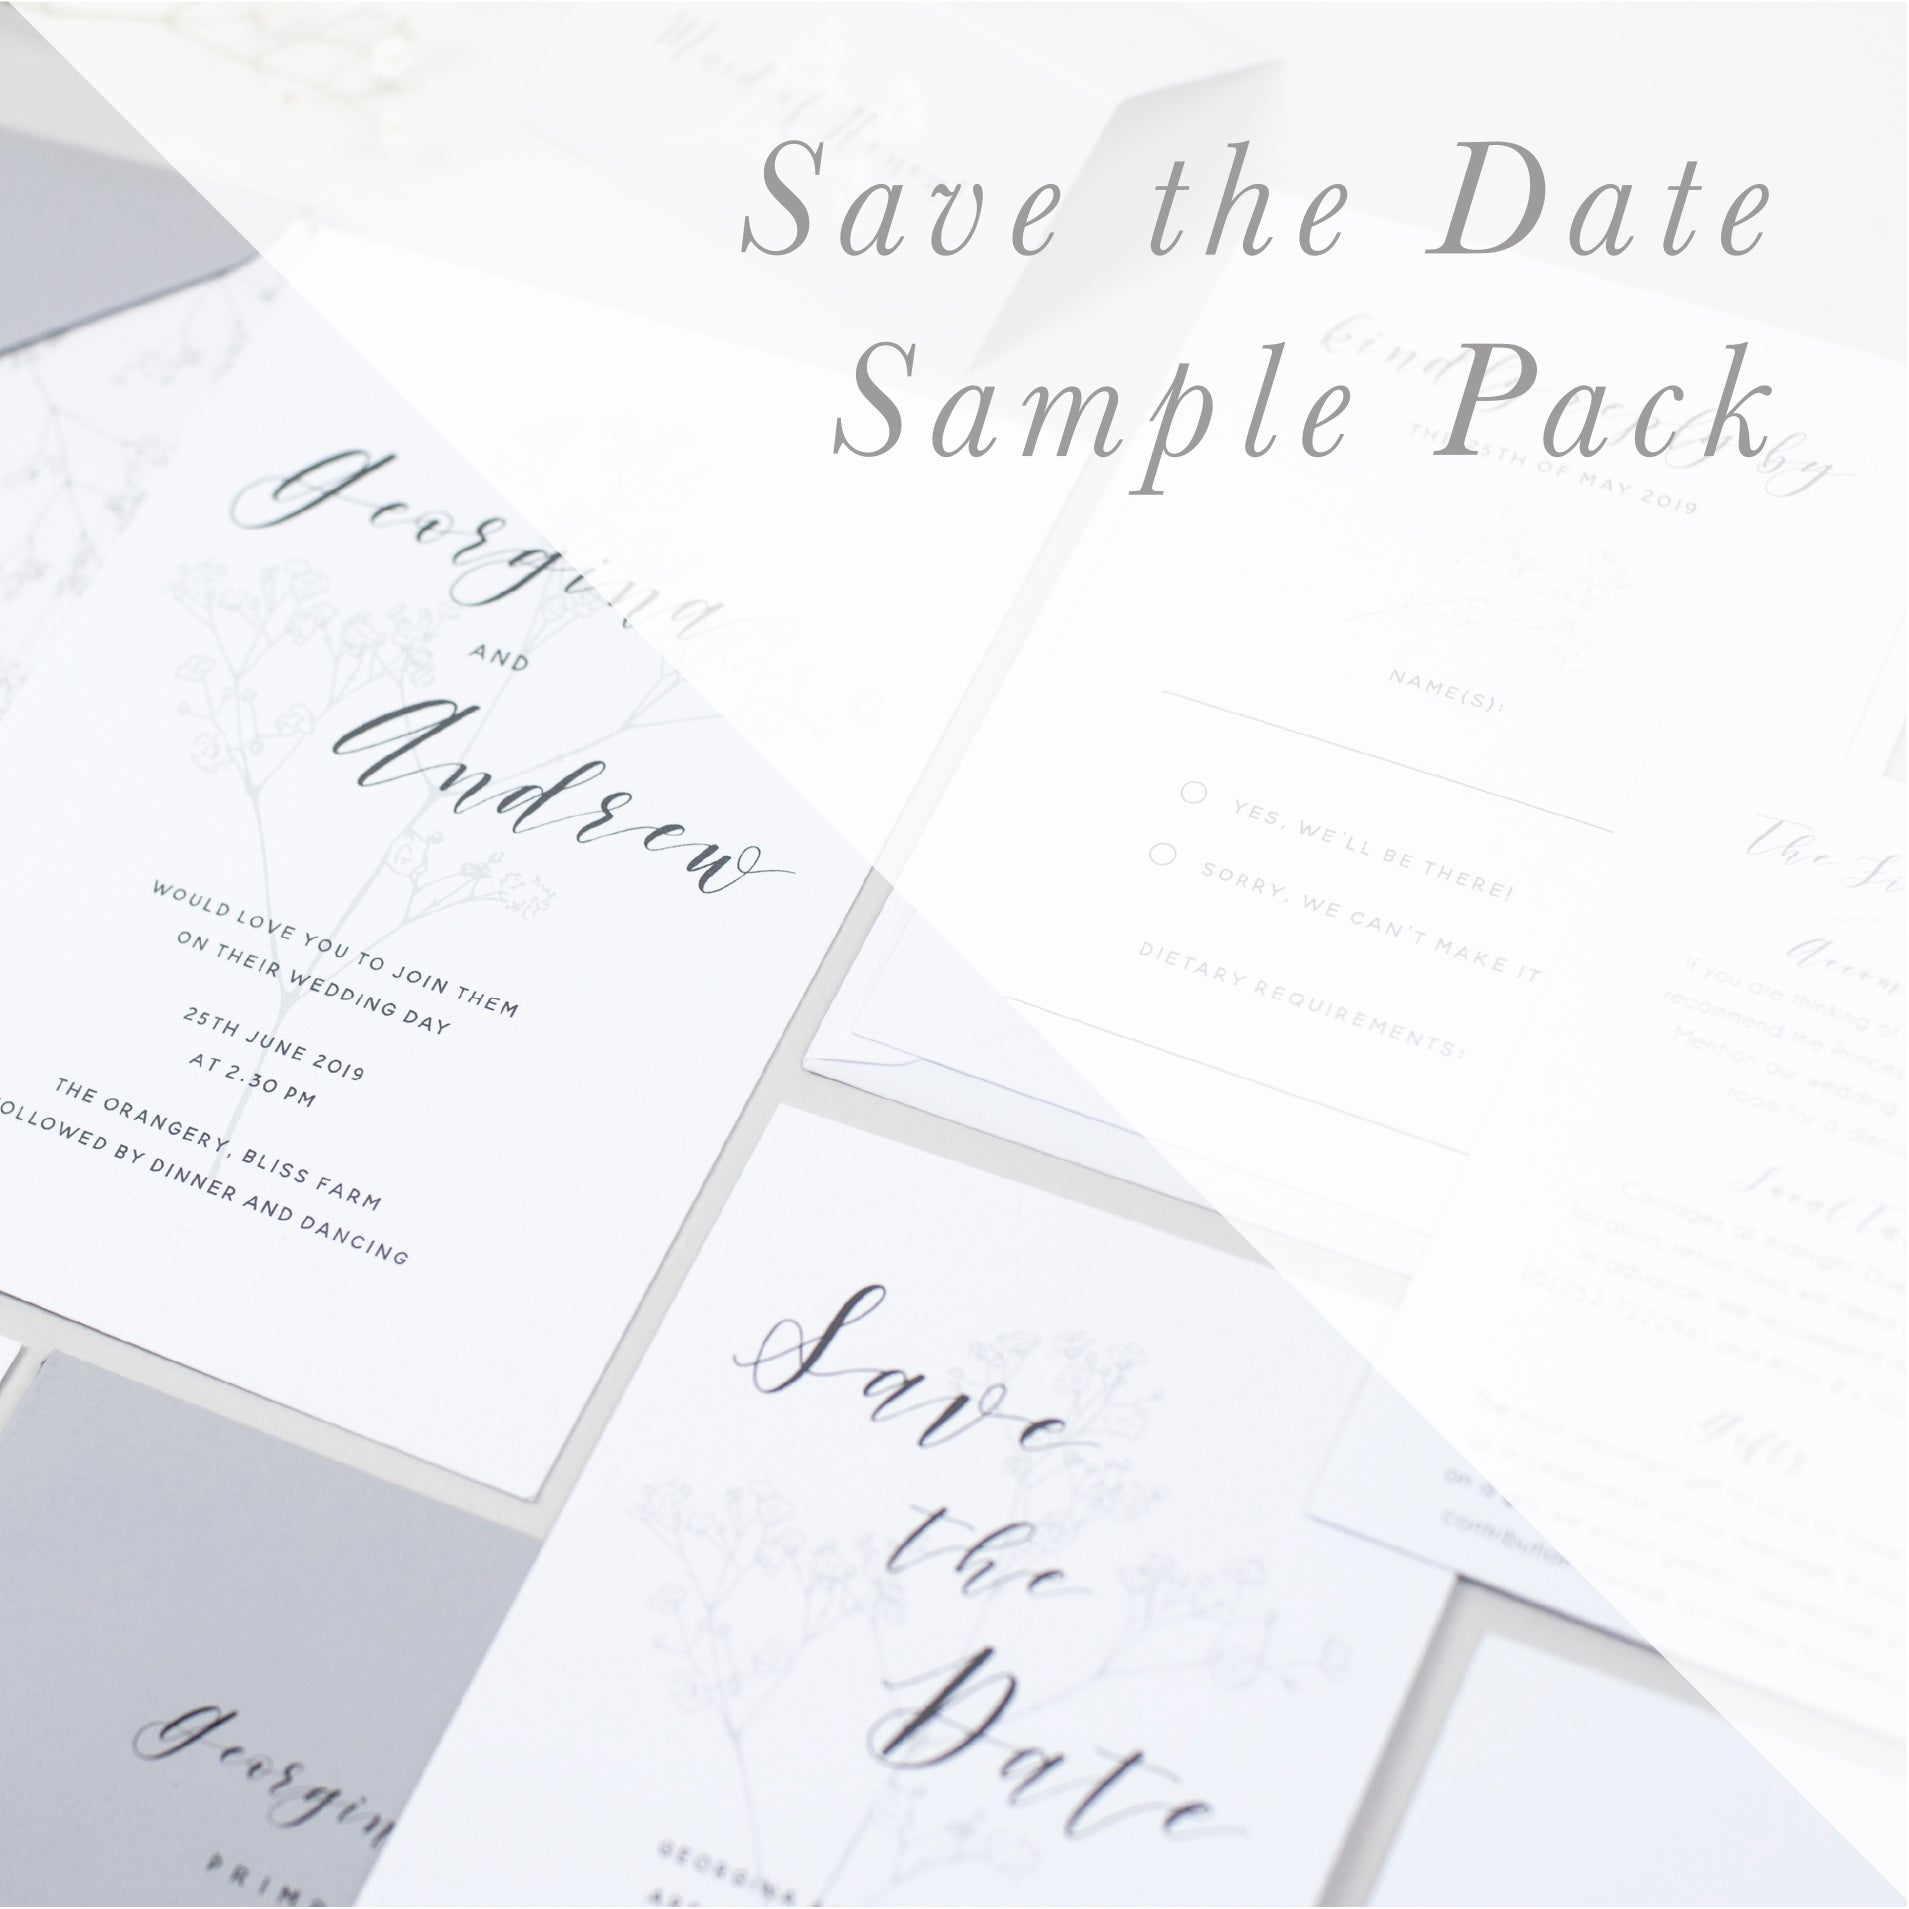 Sample Packs - Save the Dates - Pear Paper Co